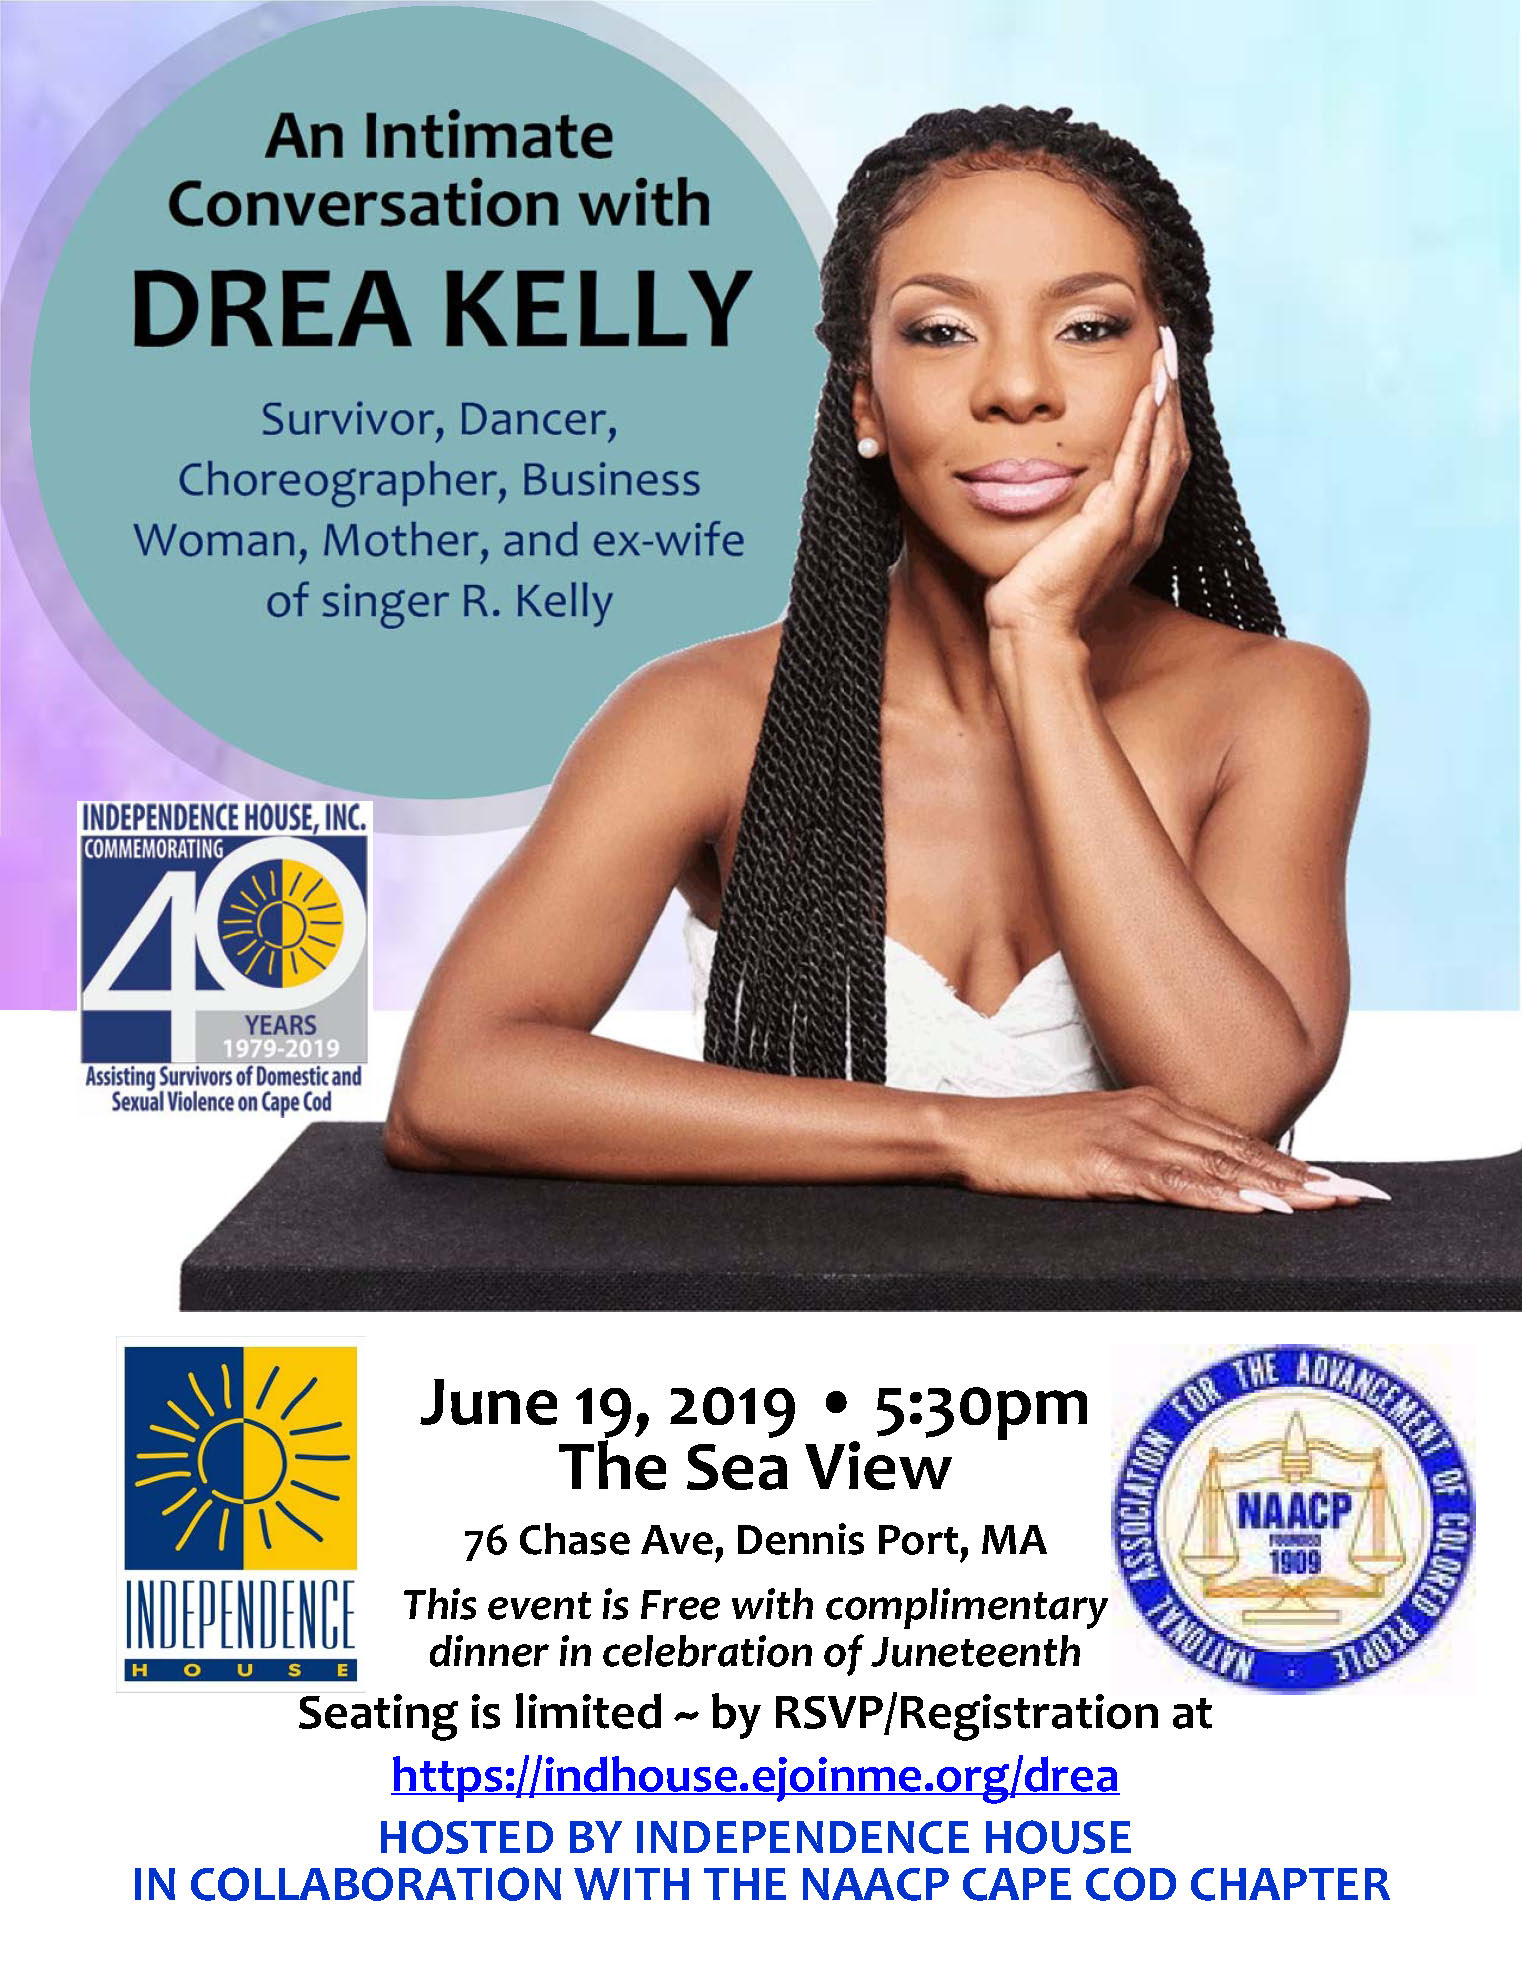 An Intimate Conversation with Drea Kelly @ The Sea View